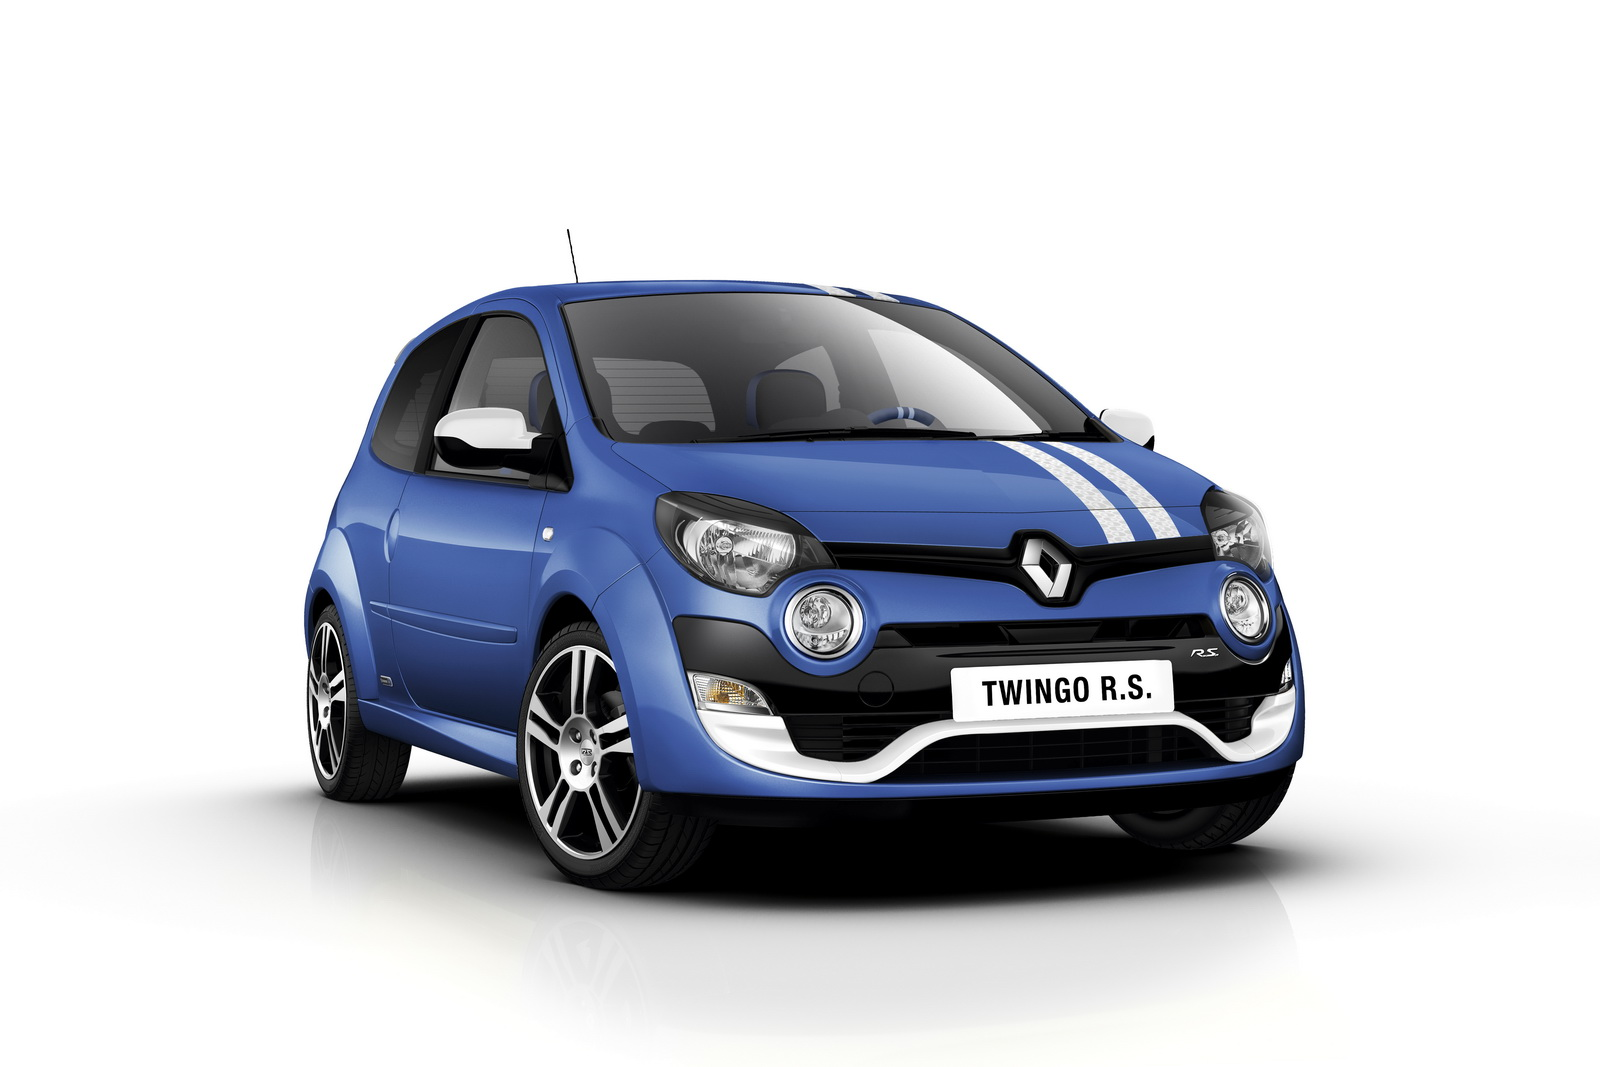 new renault twingo r s distinctive sporty looks which inspire passion and emotion. Black Bedroom Furniture Sets. Home Design Ideas